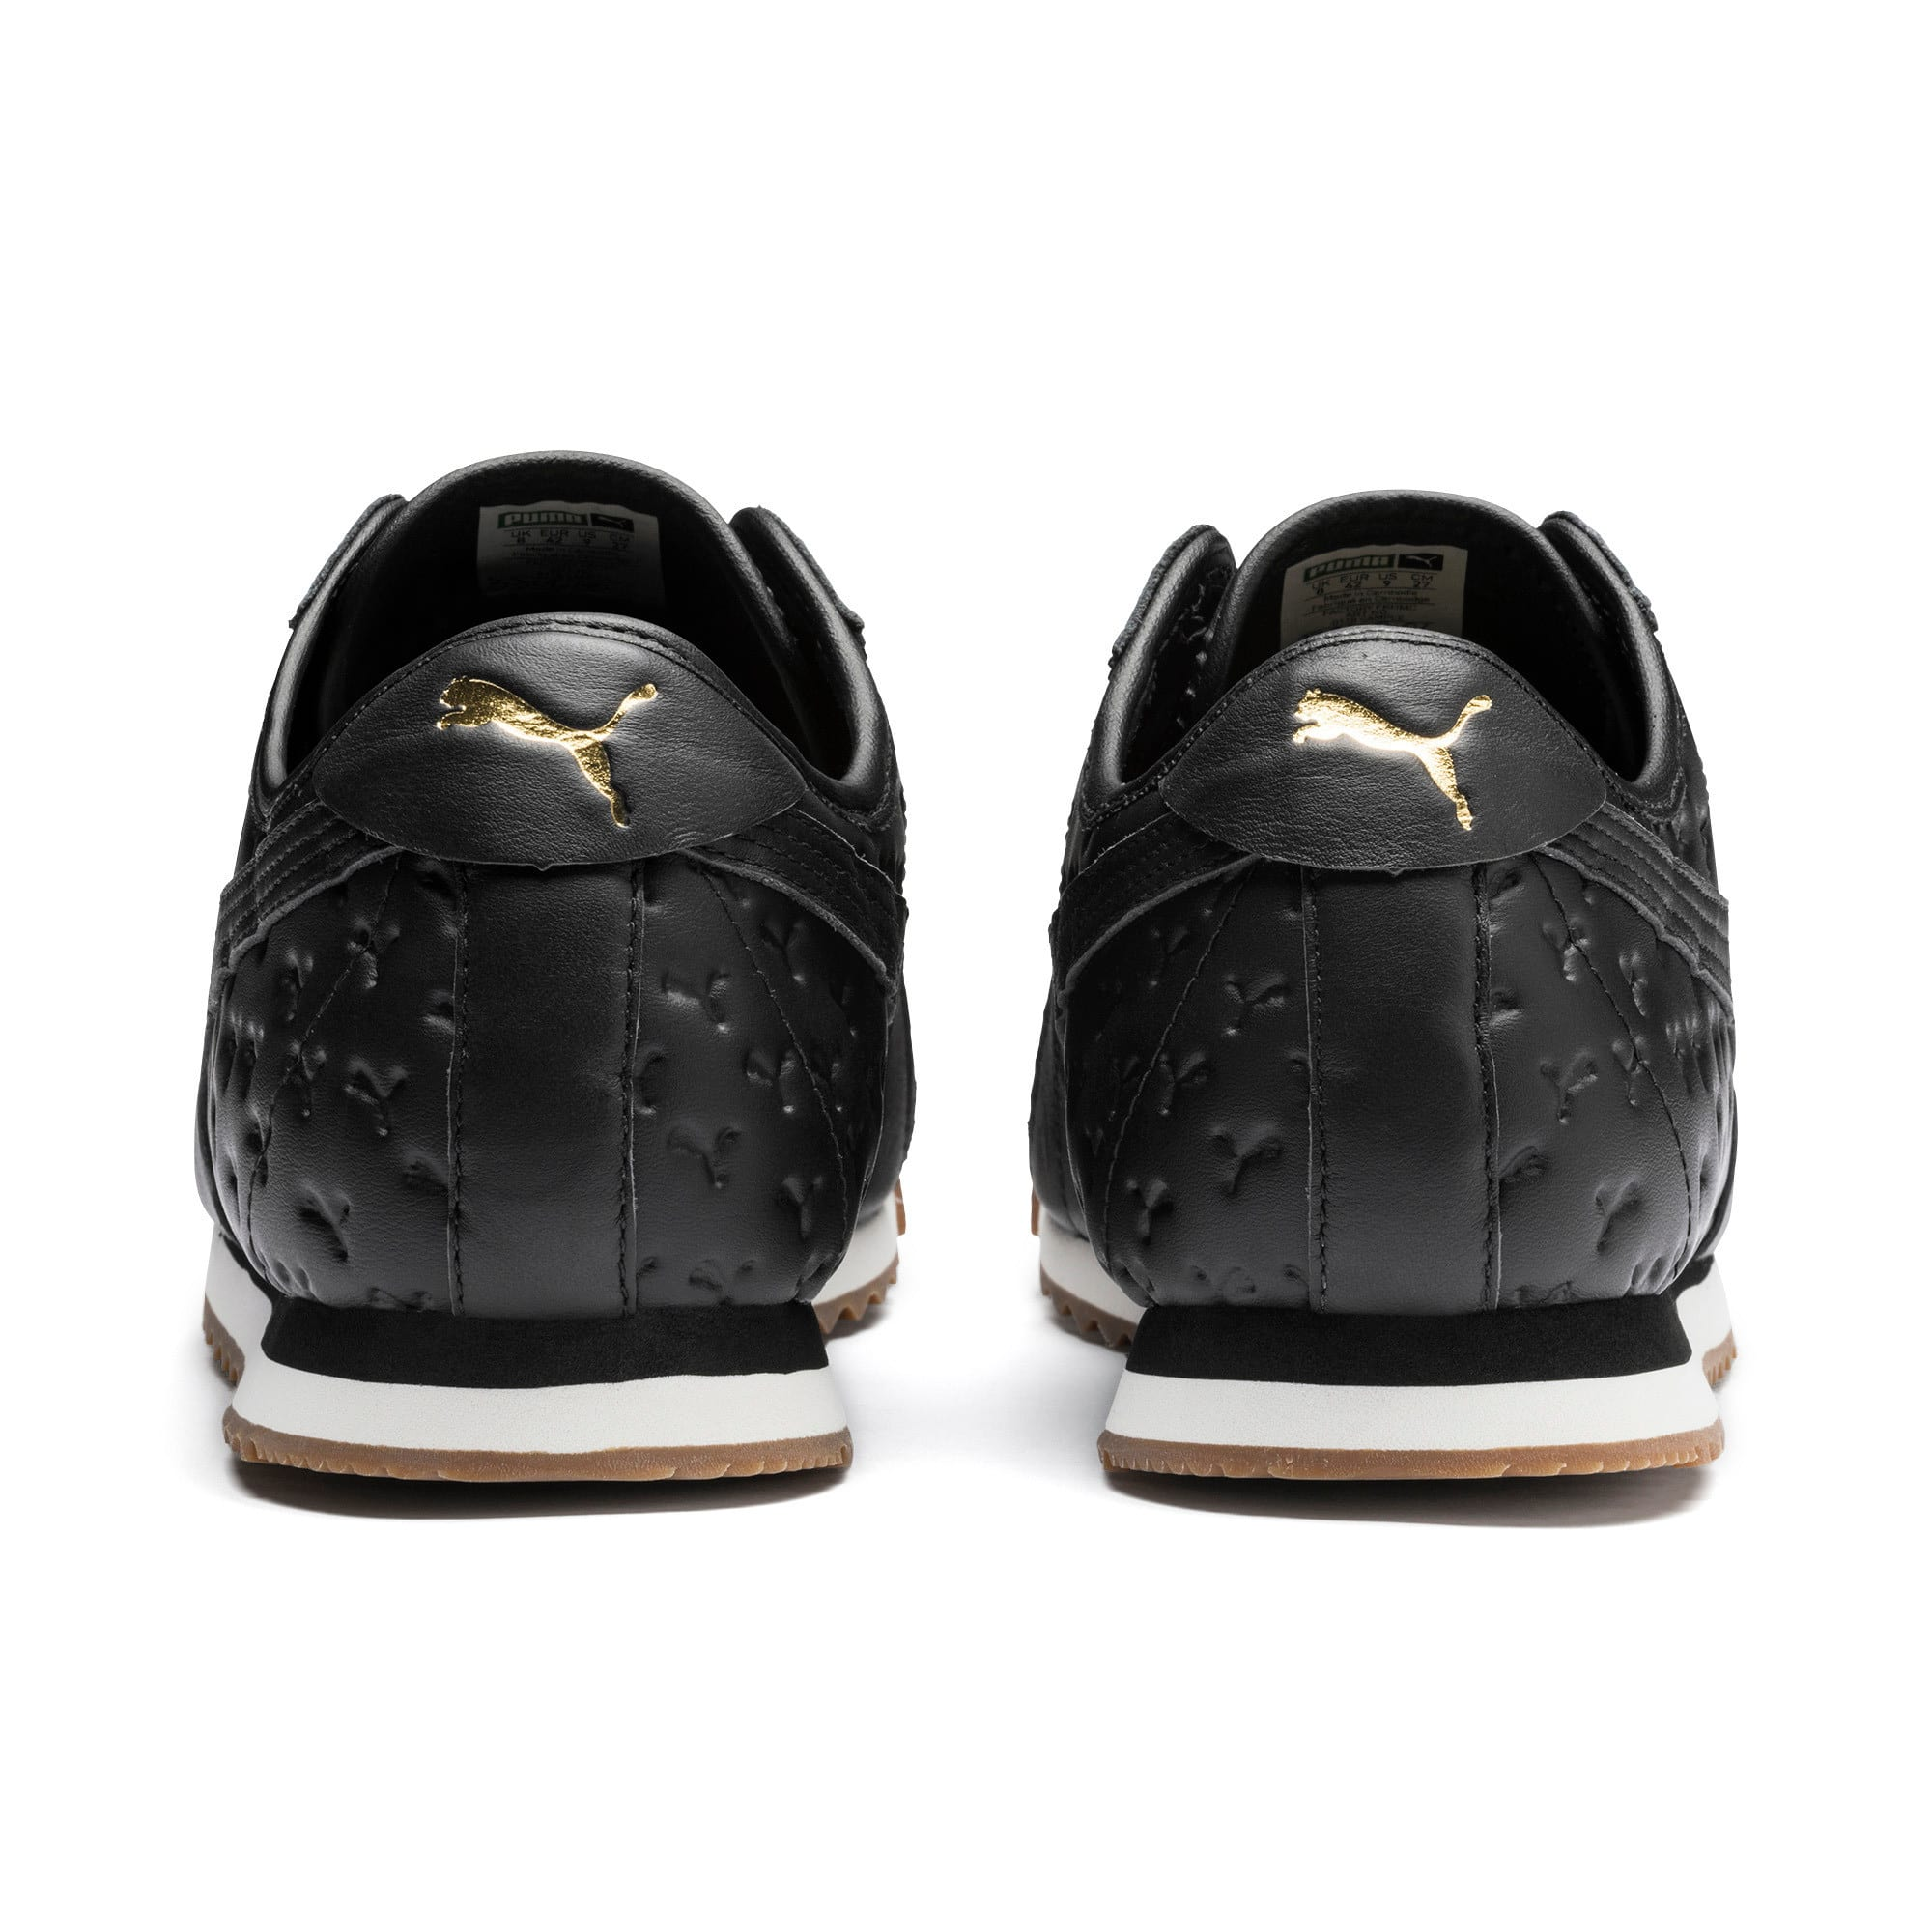 Thumbnail 4 of Roma '68 Gum Sneakers, Puma Black-Puma Black, medium